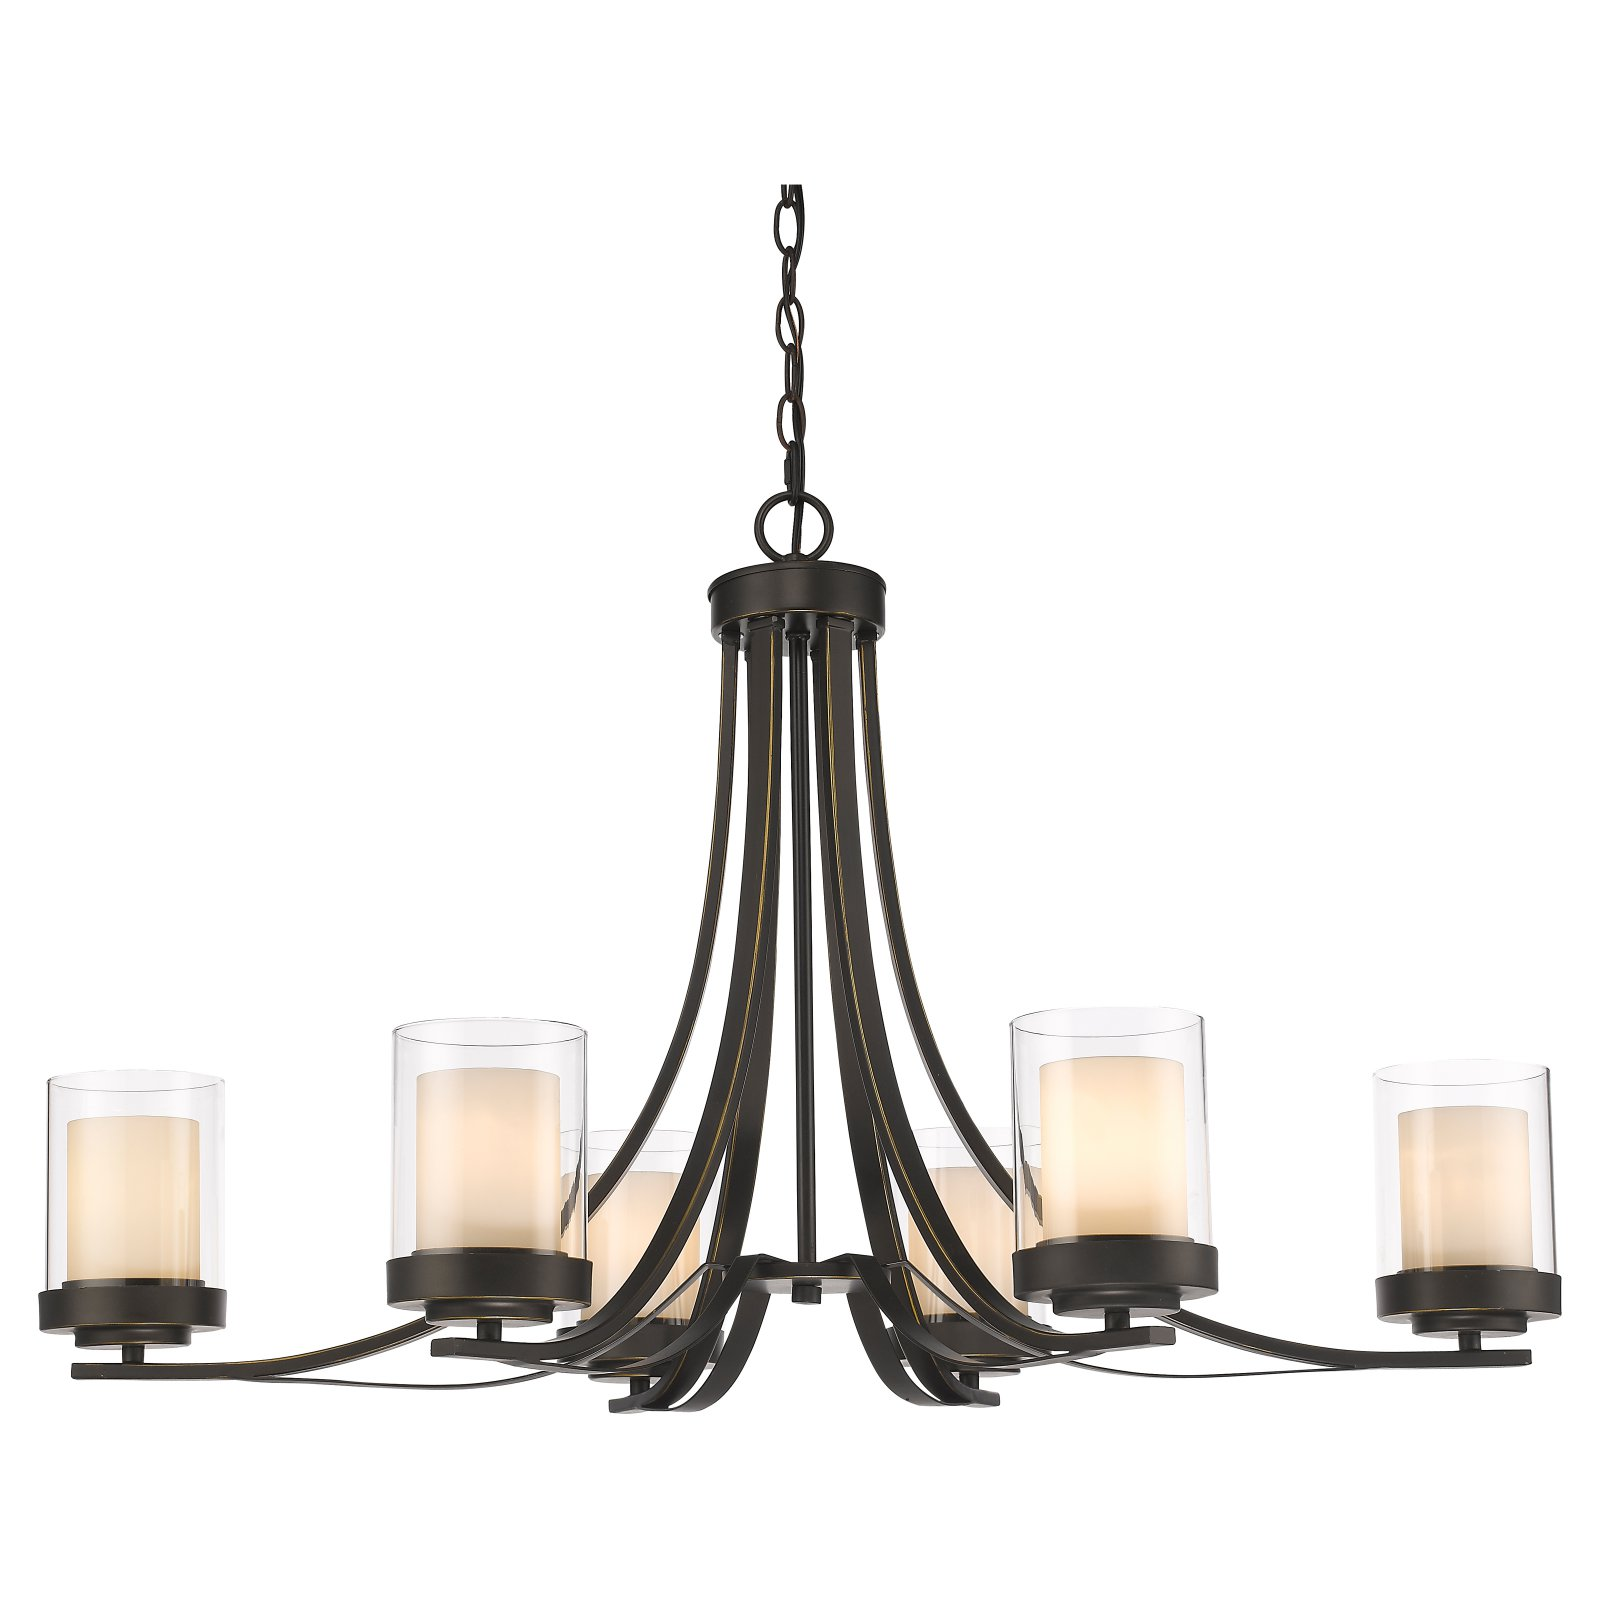 Z-Lite Willow 6-Light Chandelier, Chrome by Z-Lite